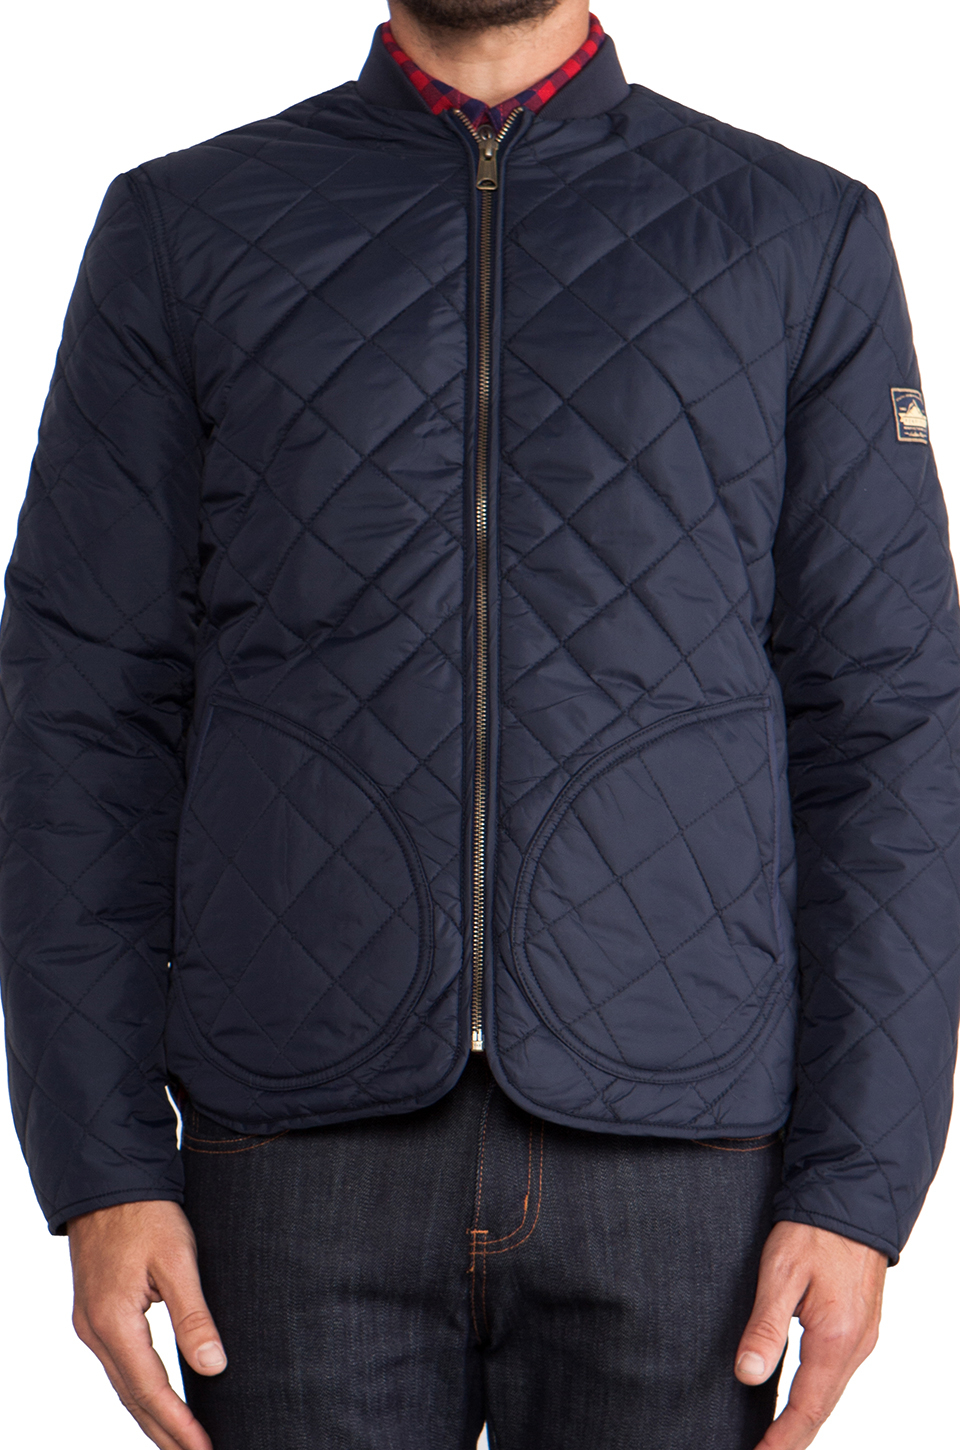 landrum men Penfield landrum quilted bomber jacket navy size men's s   clothing, shoes & accessories, men's clothing, coats & jackets   ebay.